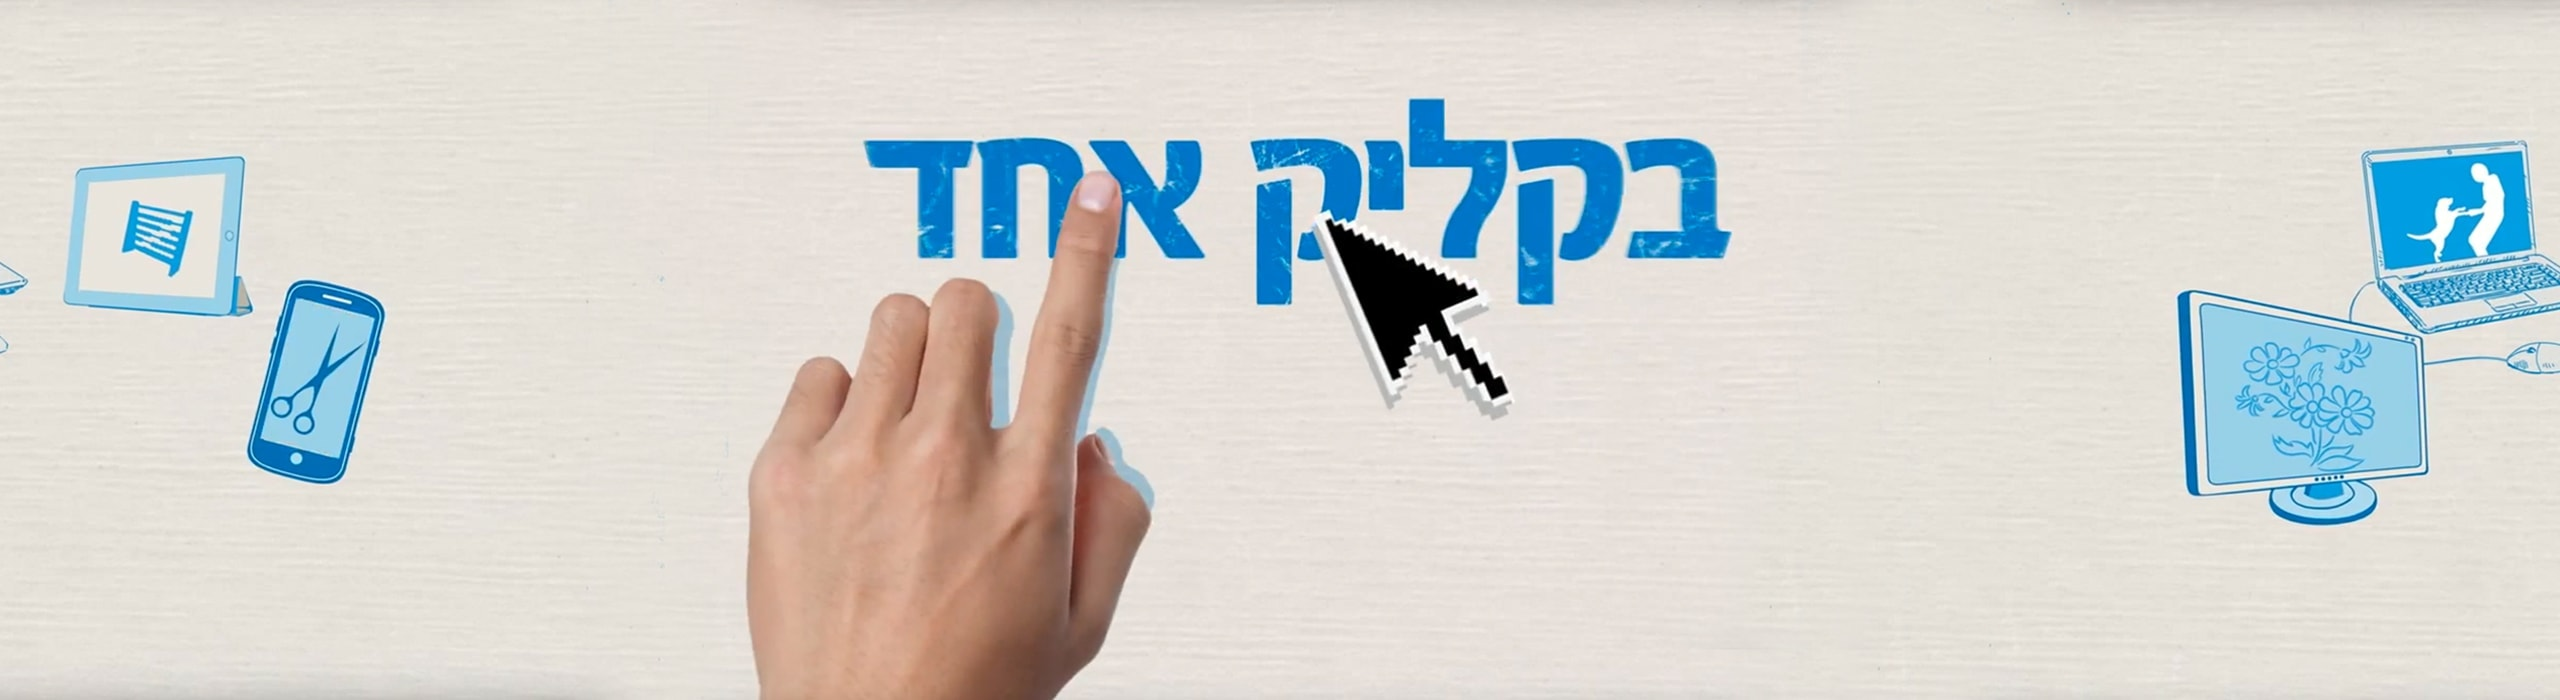 Google Israel - natie-google-israel-animation-03 - Natie Branding Agency